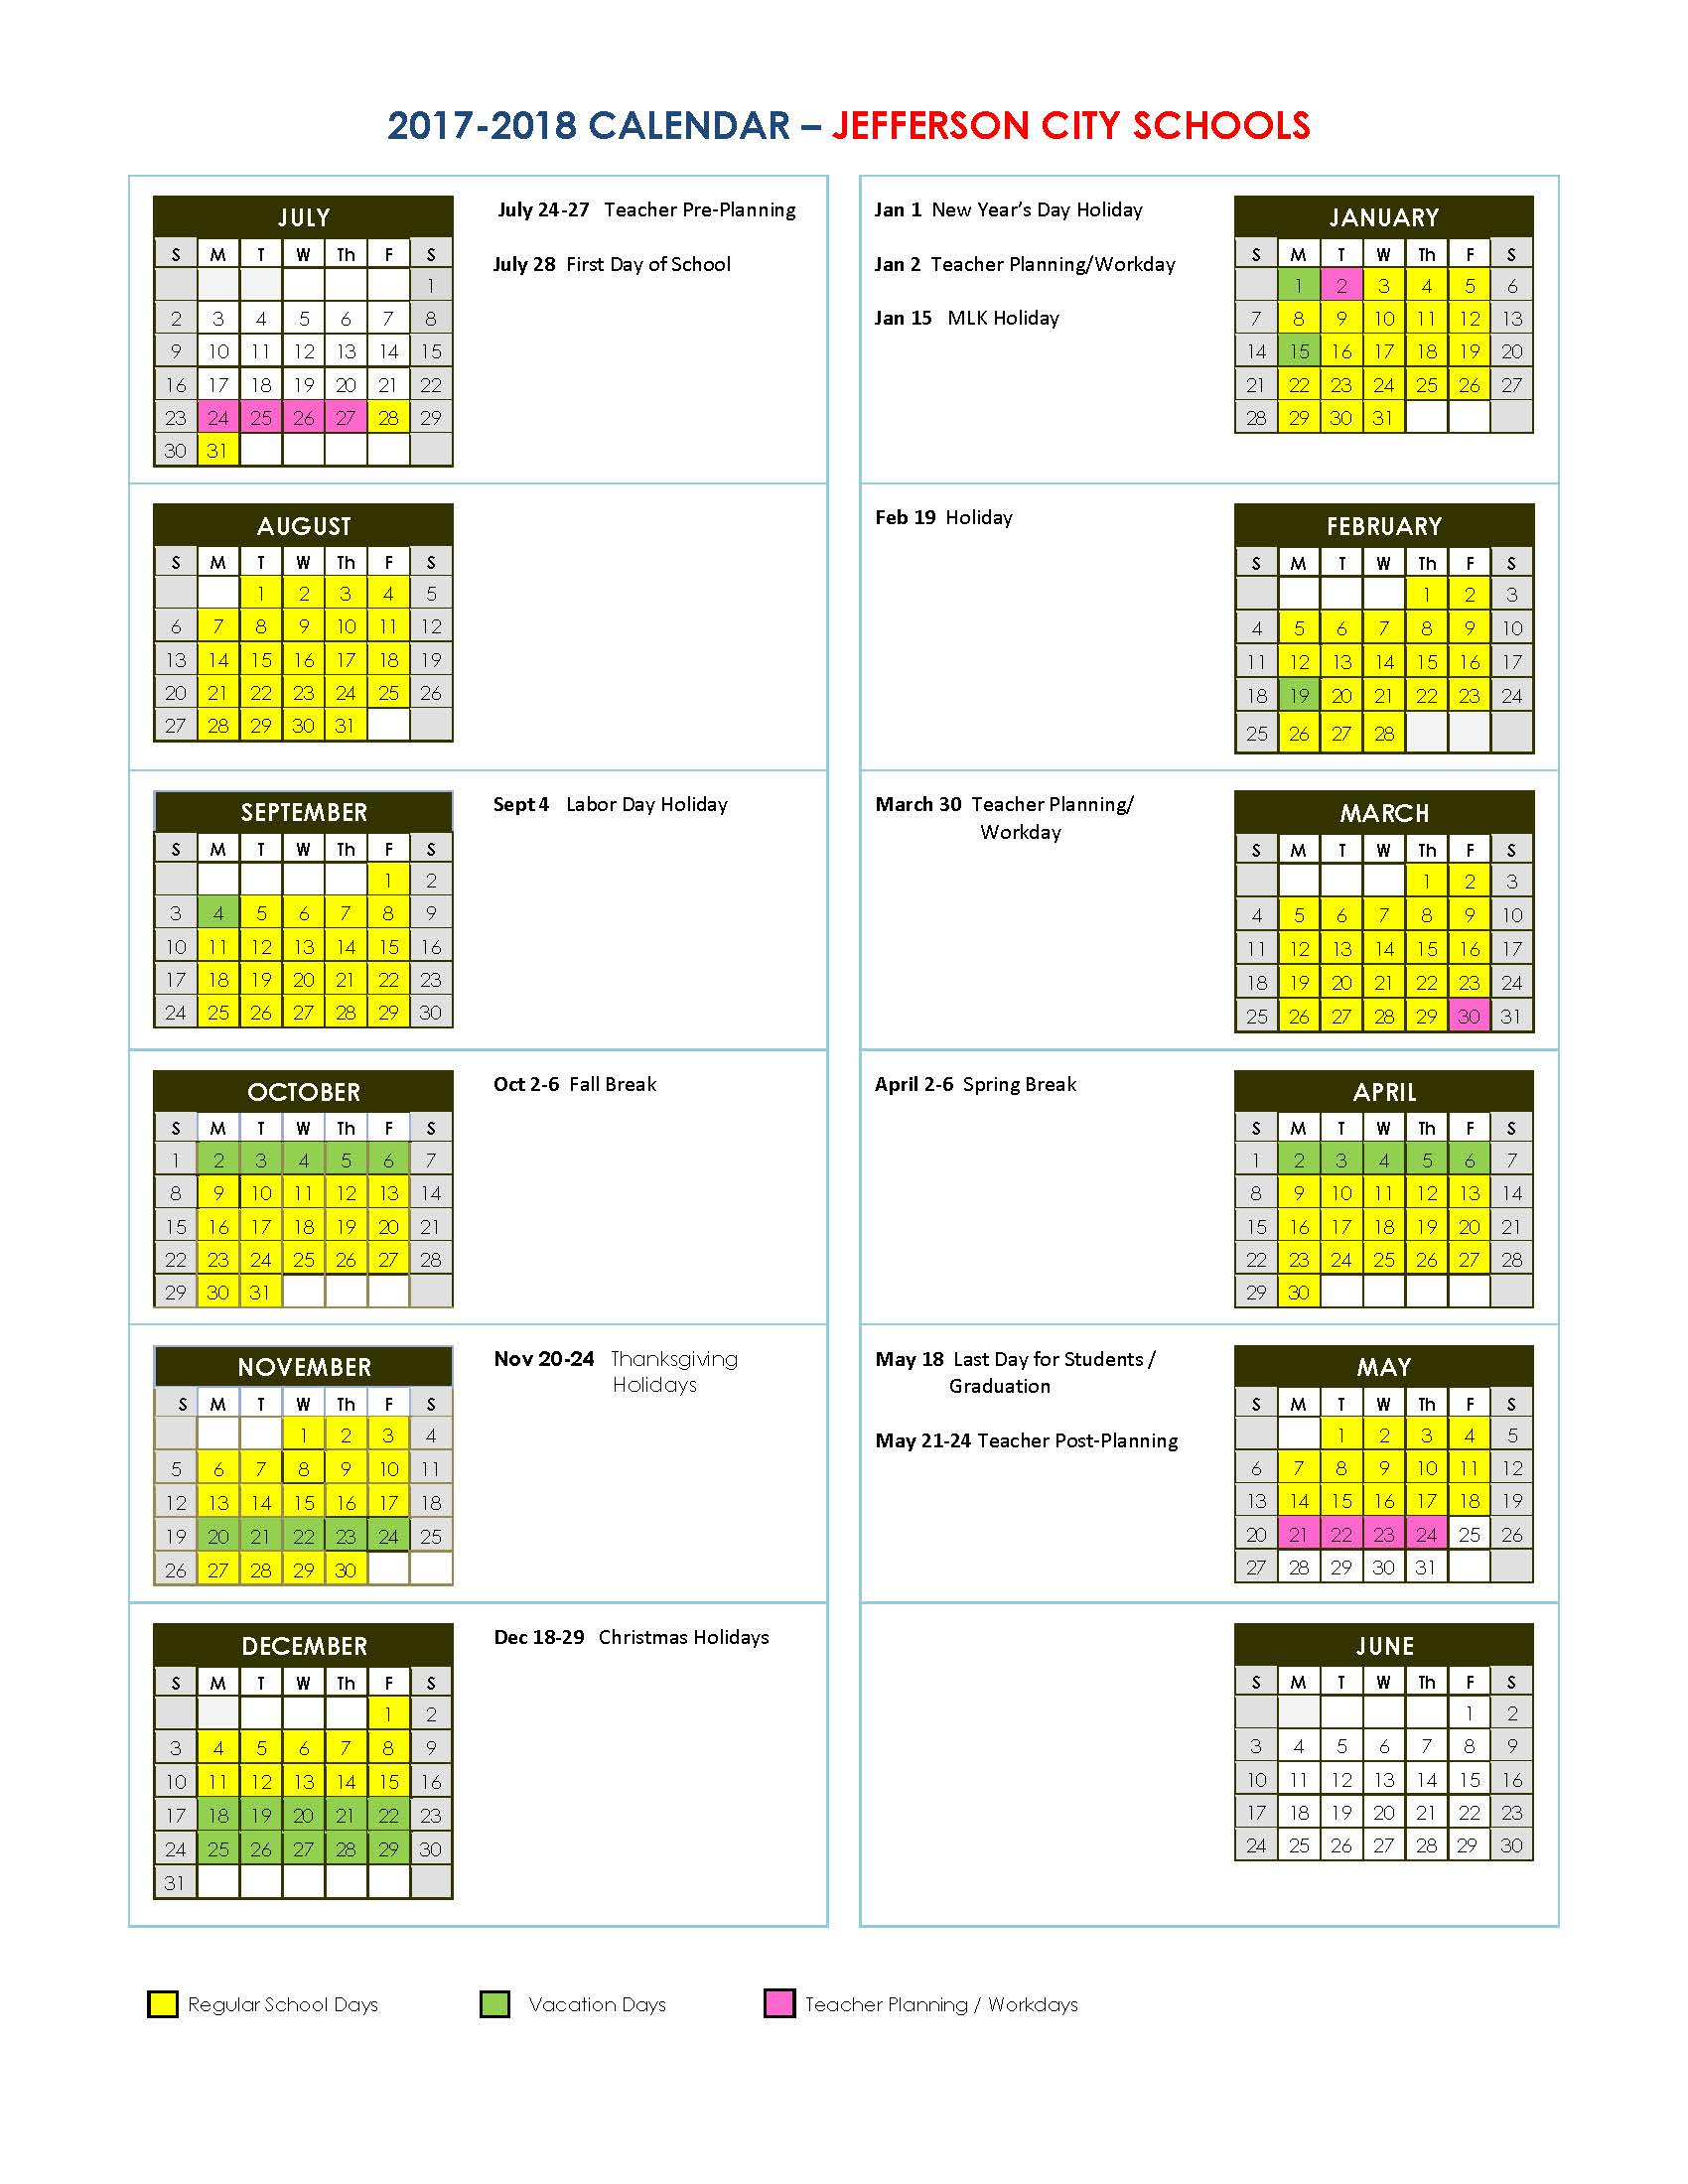 Jefferson City Schools Within Monroe Clark Middle School Calendar